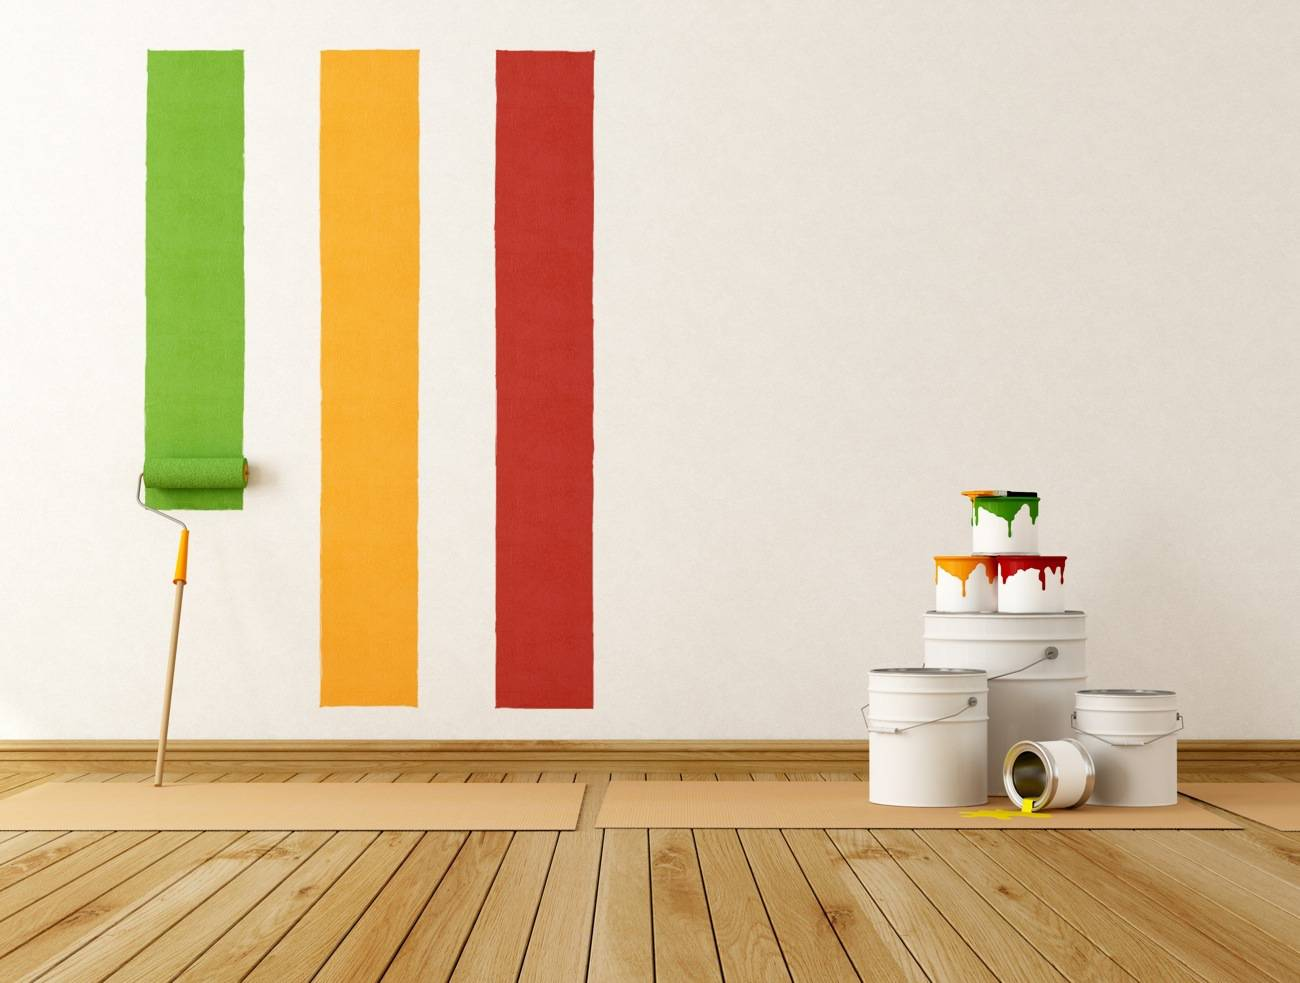 DECORACION - pintar pared colores vivos - dp